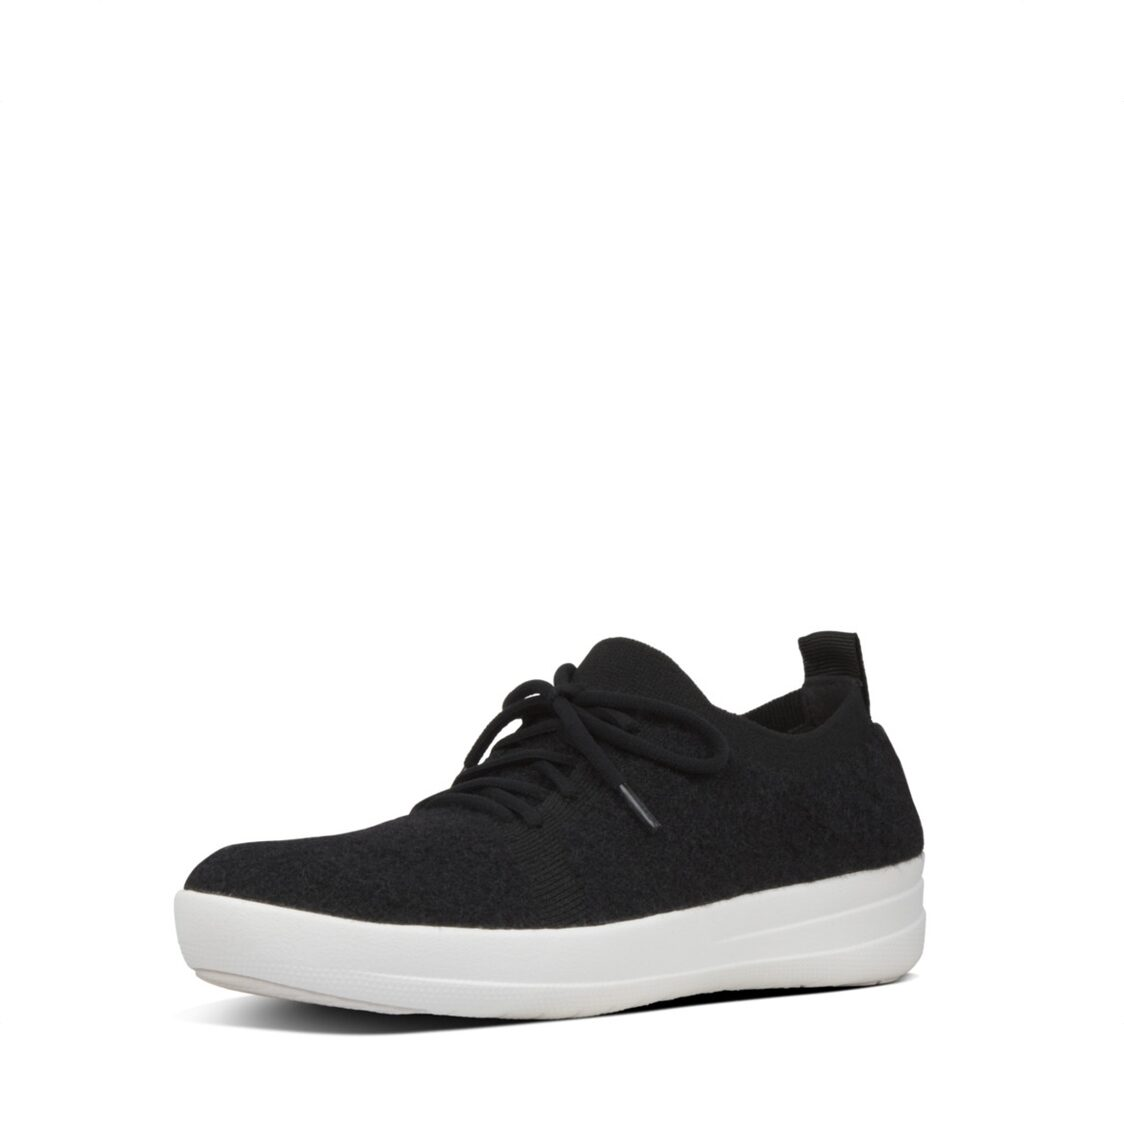 FitFlop F-Sporty Comffknit Sneakers Black